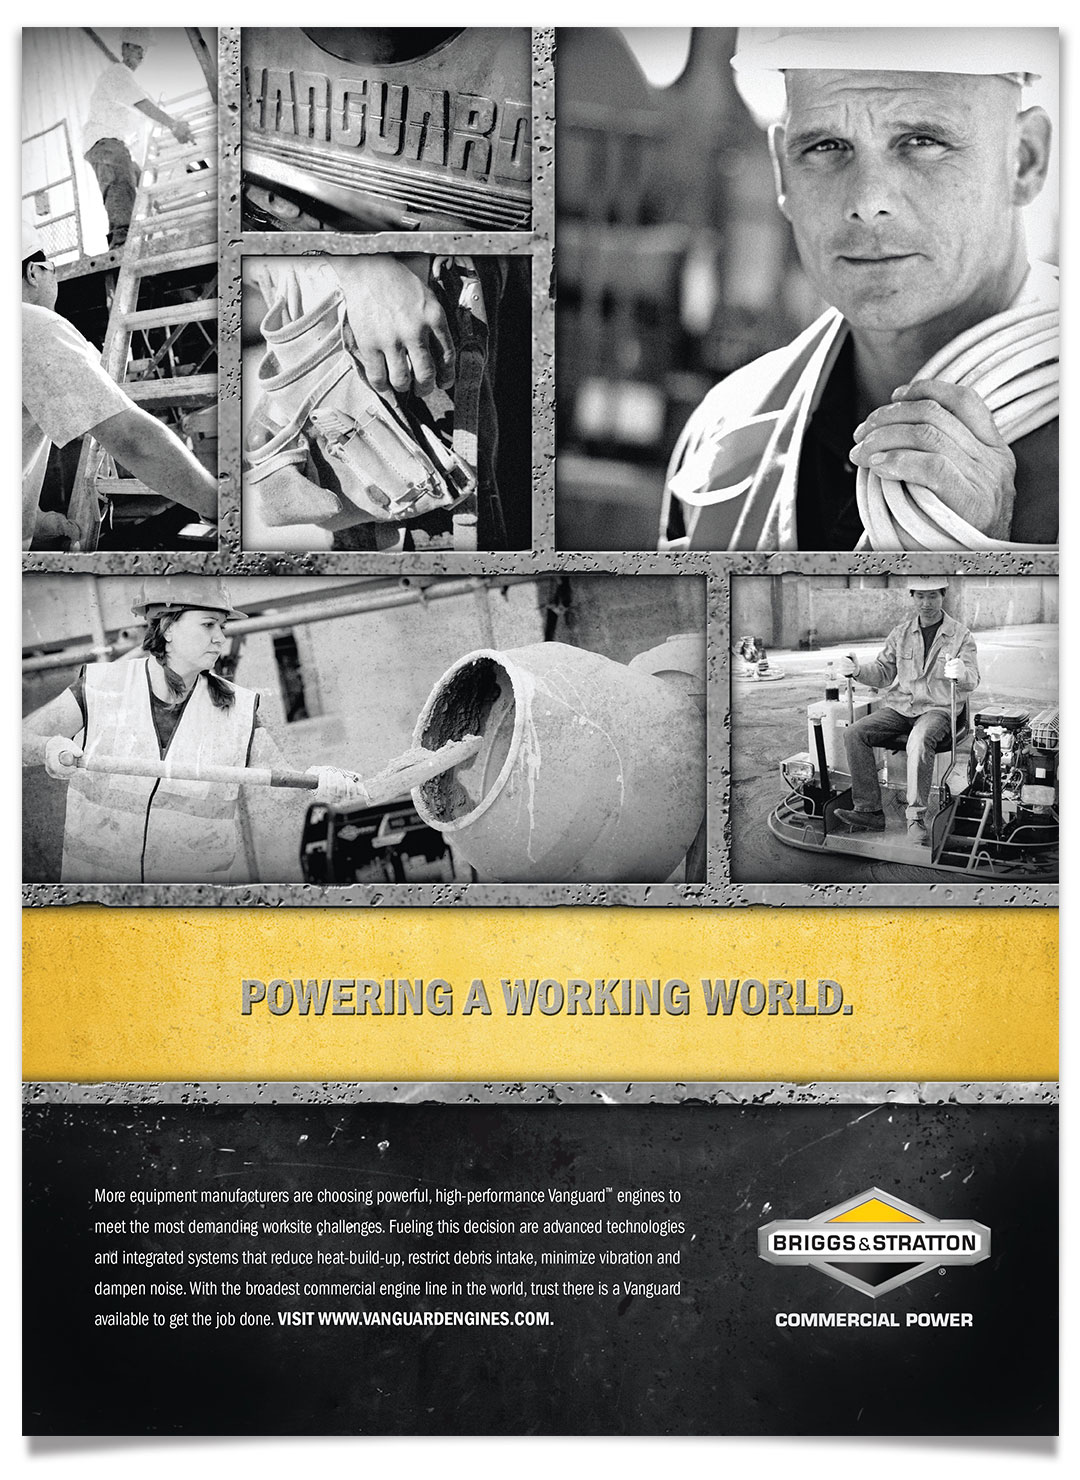 Briggs & Stratton Commercial Power: Vanguard | Swanson Russell